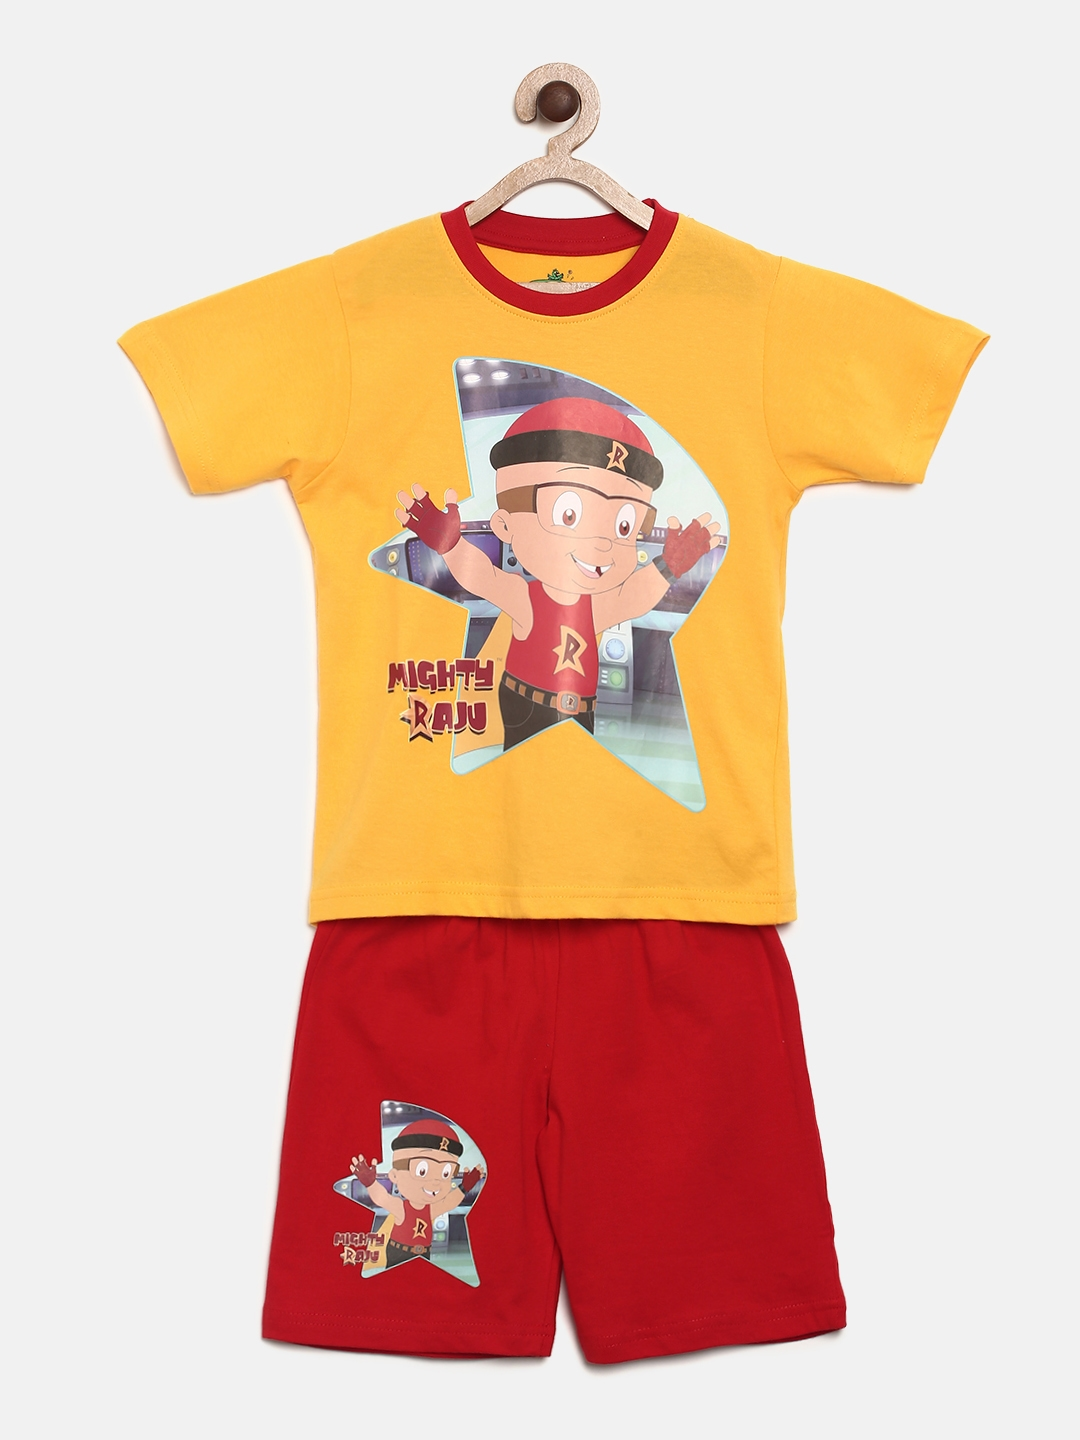 3398e9d386 Buy MIGHTY RAJU Boys Yellow & Red Printed T Shirt With Shorts ...